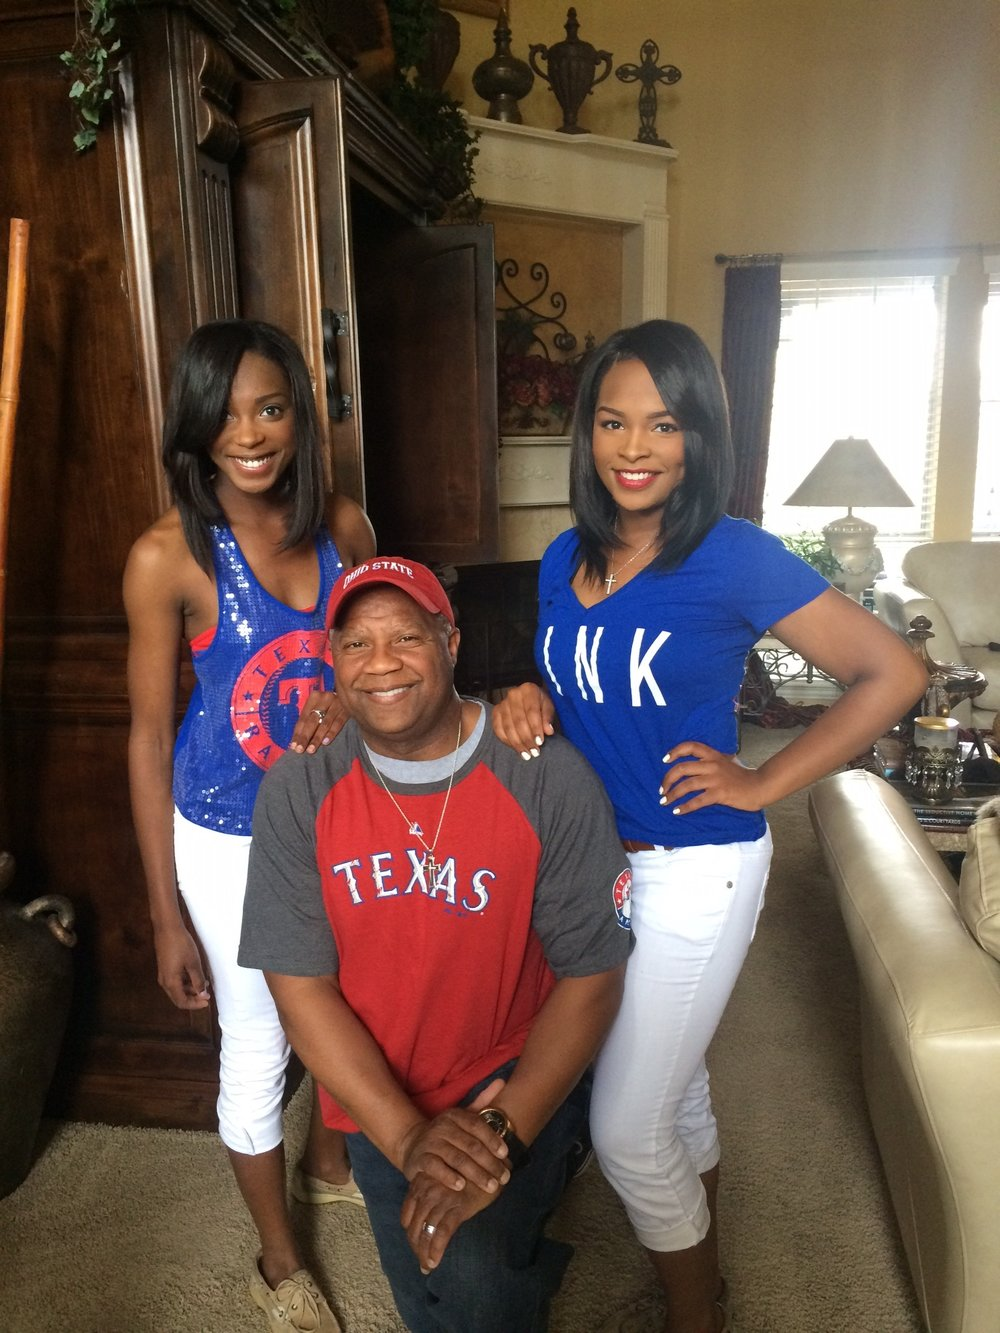 Keith and his two daughters at home in Richardson, Texas.